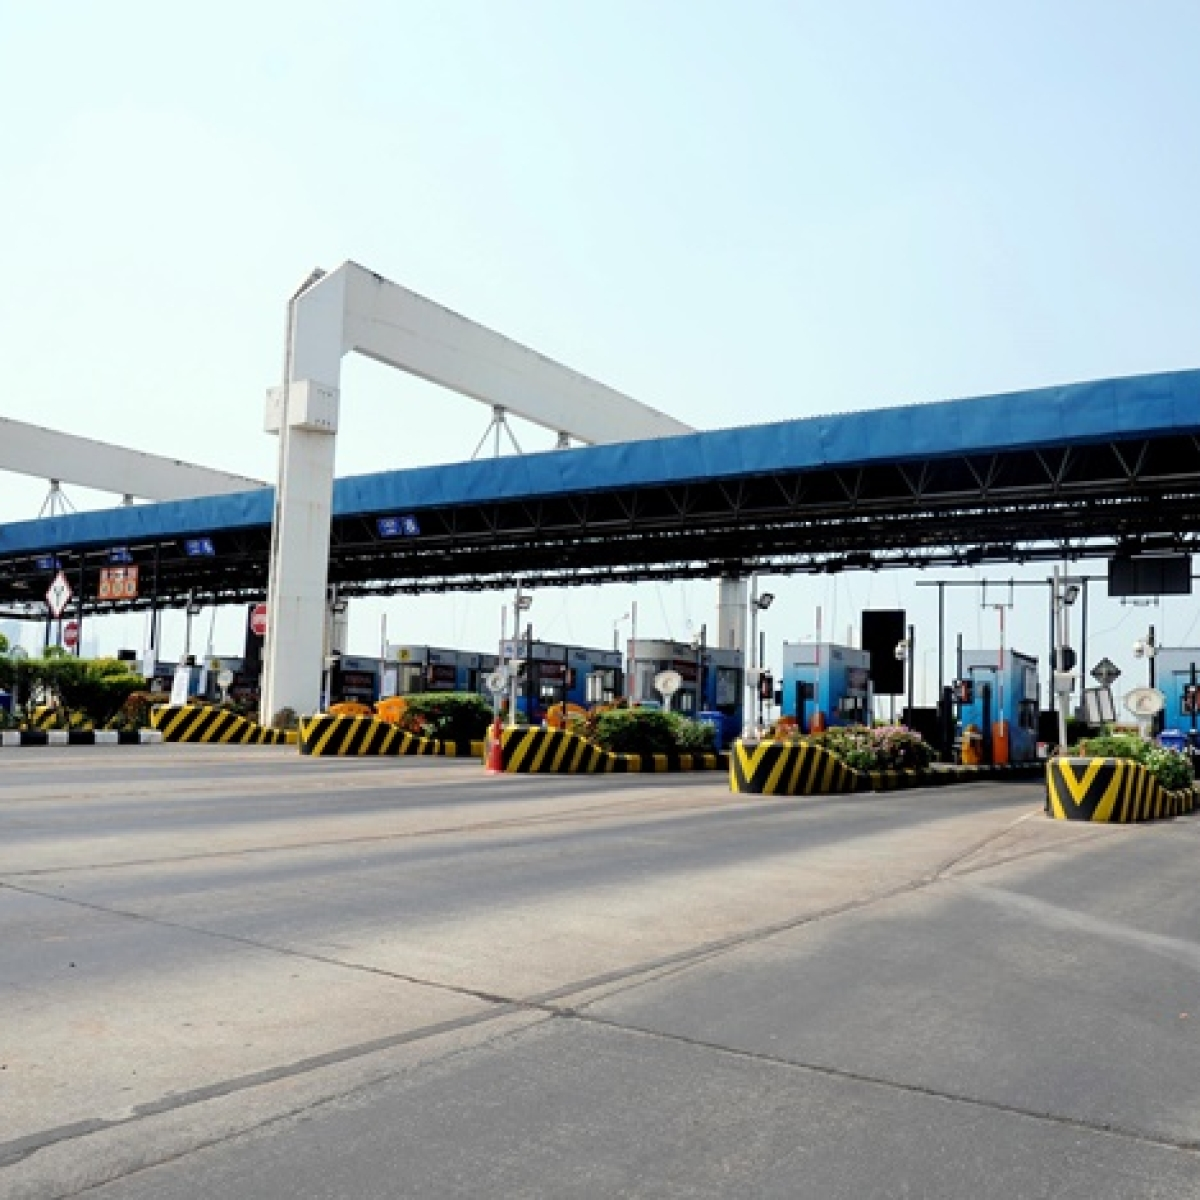 Coronavirus outbreak: Govt suspends toll collection on national highways to ease emergency services